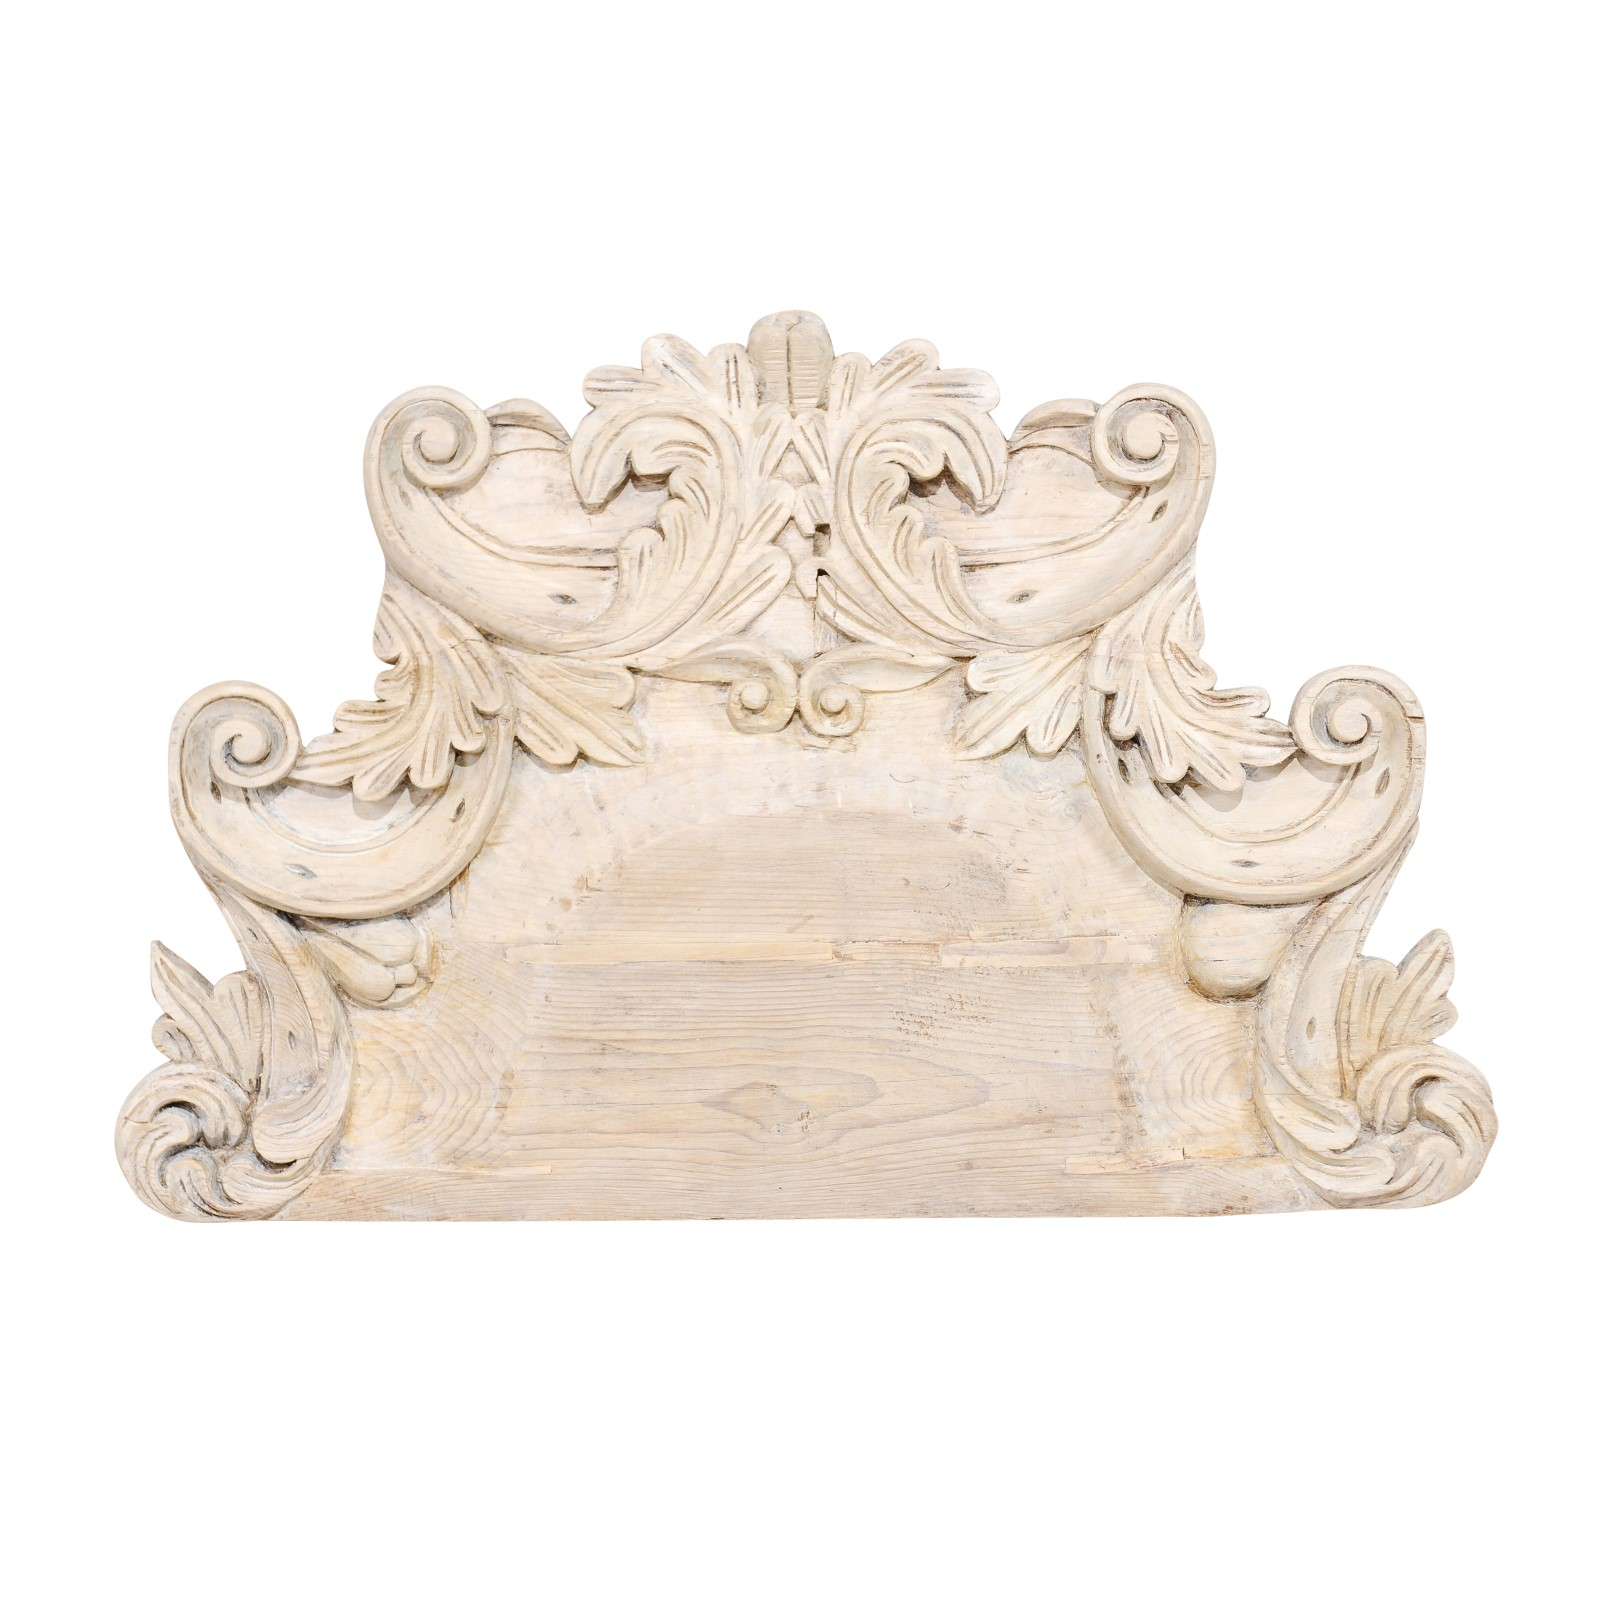 Ornately Carved Wood Wall Plaque